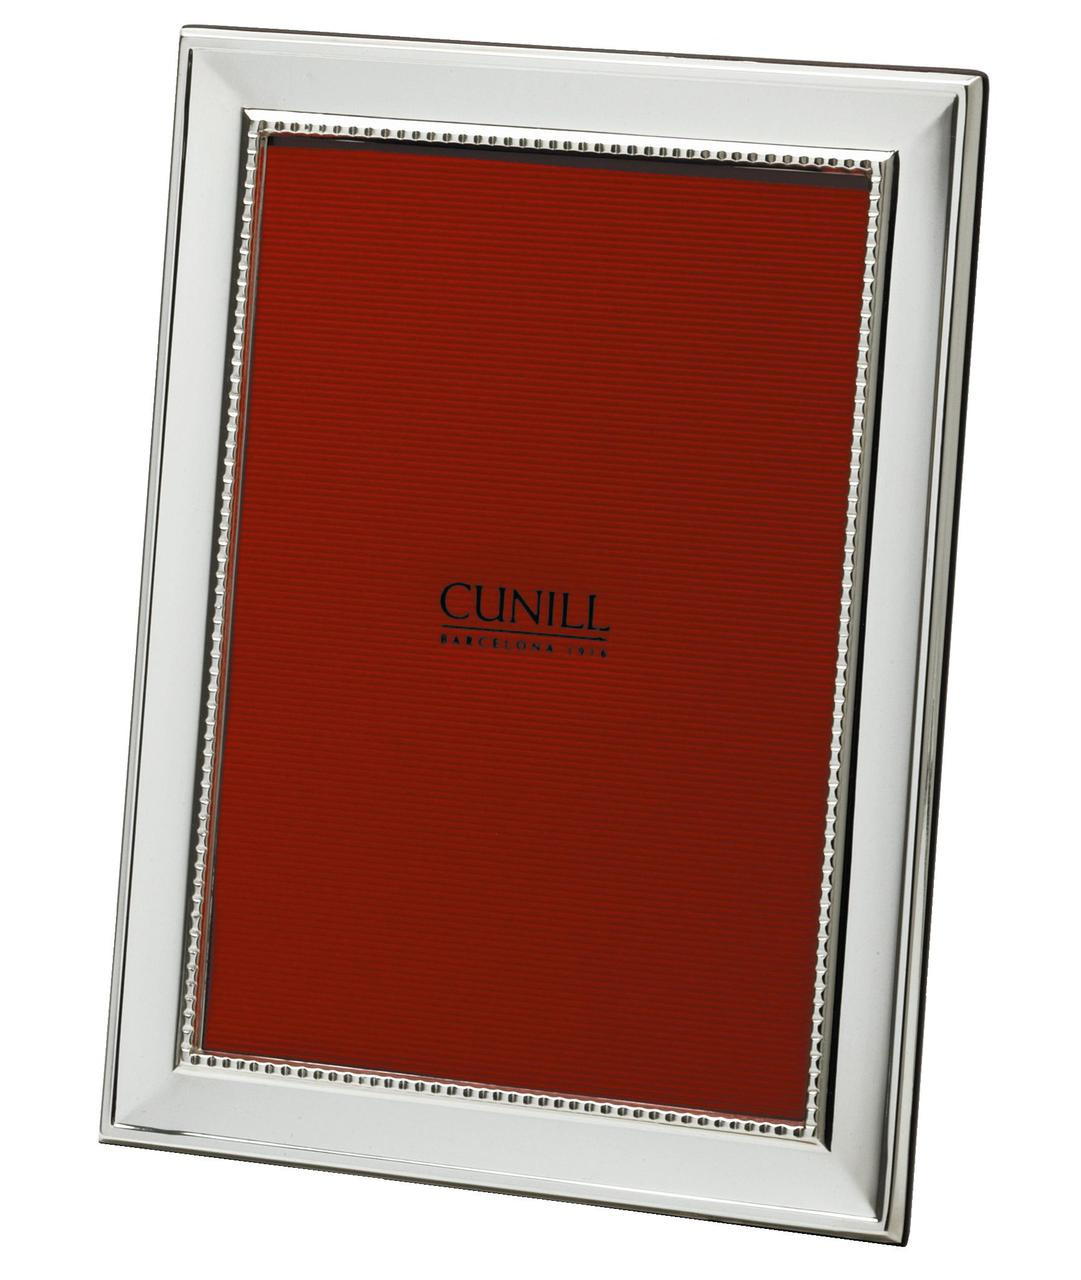 Cunill 925 sterling silver grooves 5x7 picture frame cunill america cunill 925 sterling silver grooves 5x7 picture frame jeuxipadfo Image collections